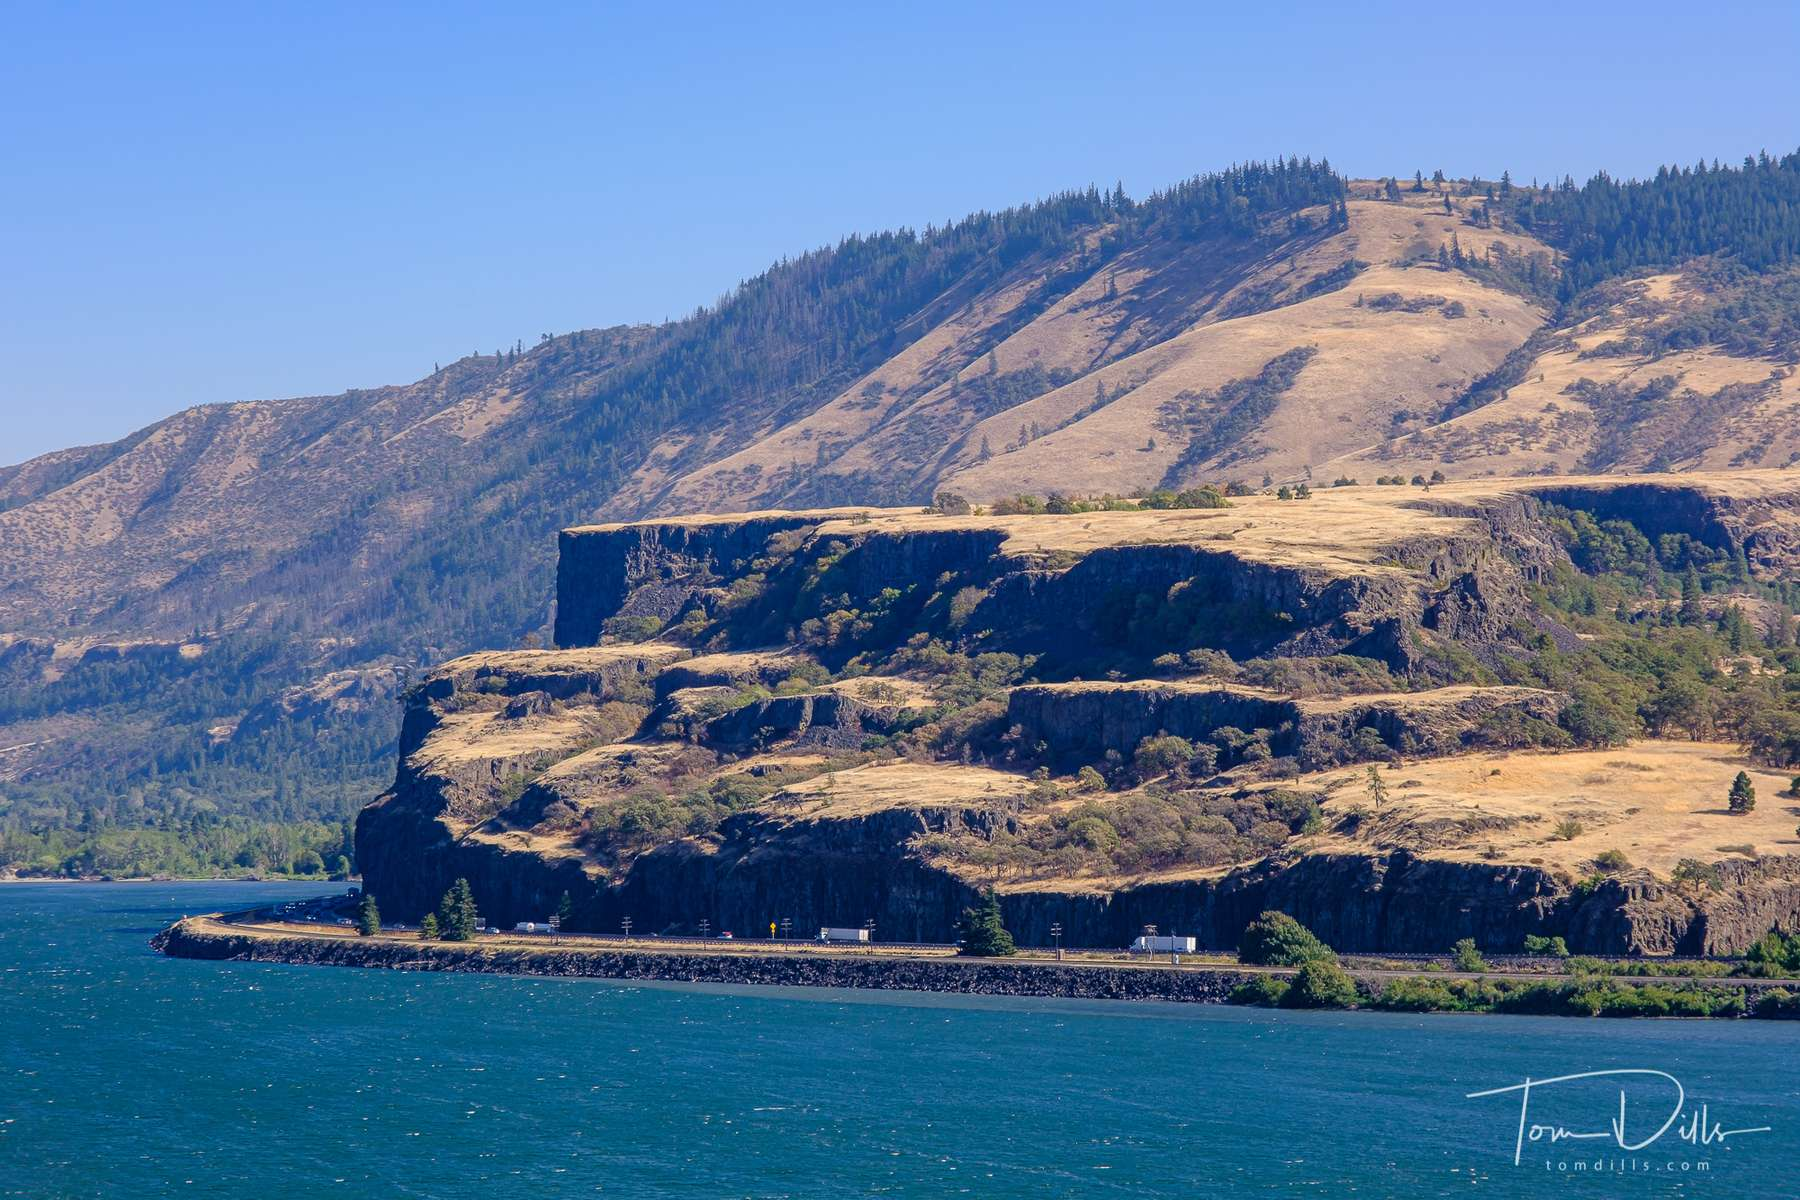 Scenery from the Chamberlain Lake Rest Area on SR-14 along the north side of the Columbia River in Washington